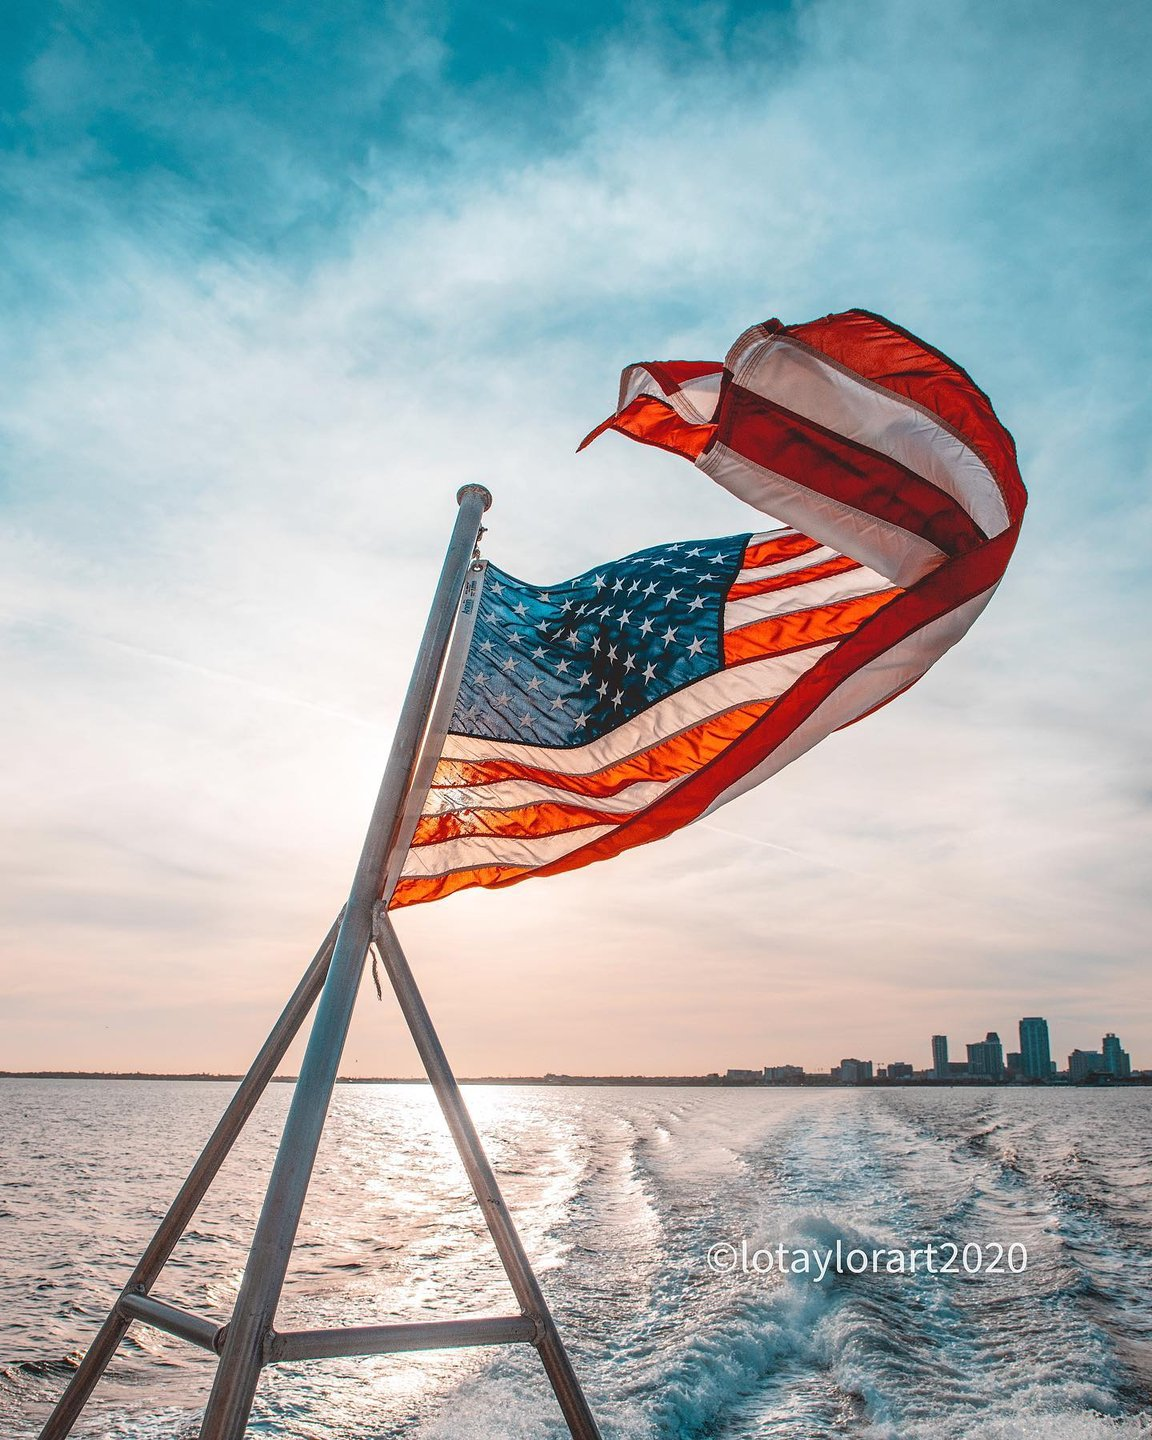 Another first for me. A trip on  #crossbayferry from St Pete to Tampa.  #stpetersburgflorida #stpete #florida #floridabeaches  #floridatravel #cleargram  #florida_greatshots #floridatravel #hashtagflorida #visitflorida #bssshutterbug  #BestoftheSunshineState #sunset_sunrise_beautiful #global_sunrise_sunsets